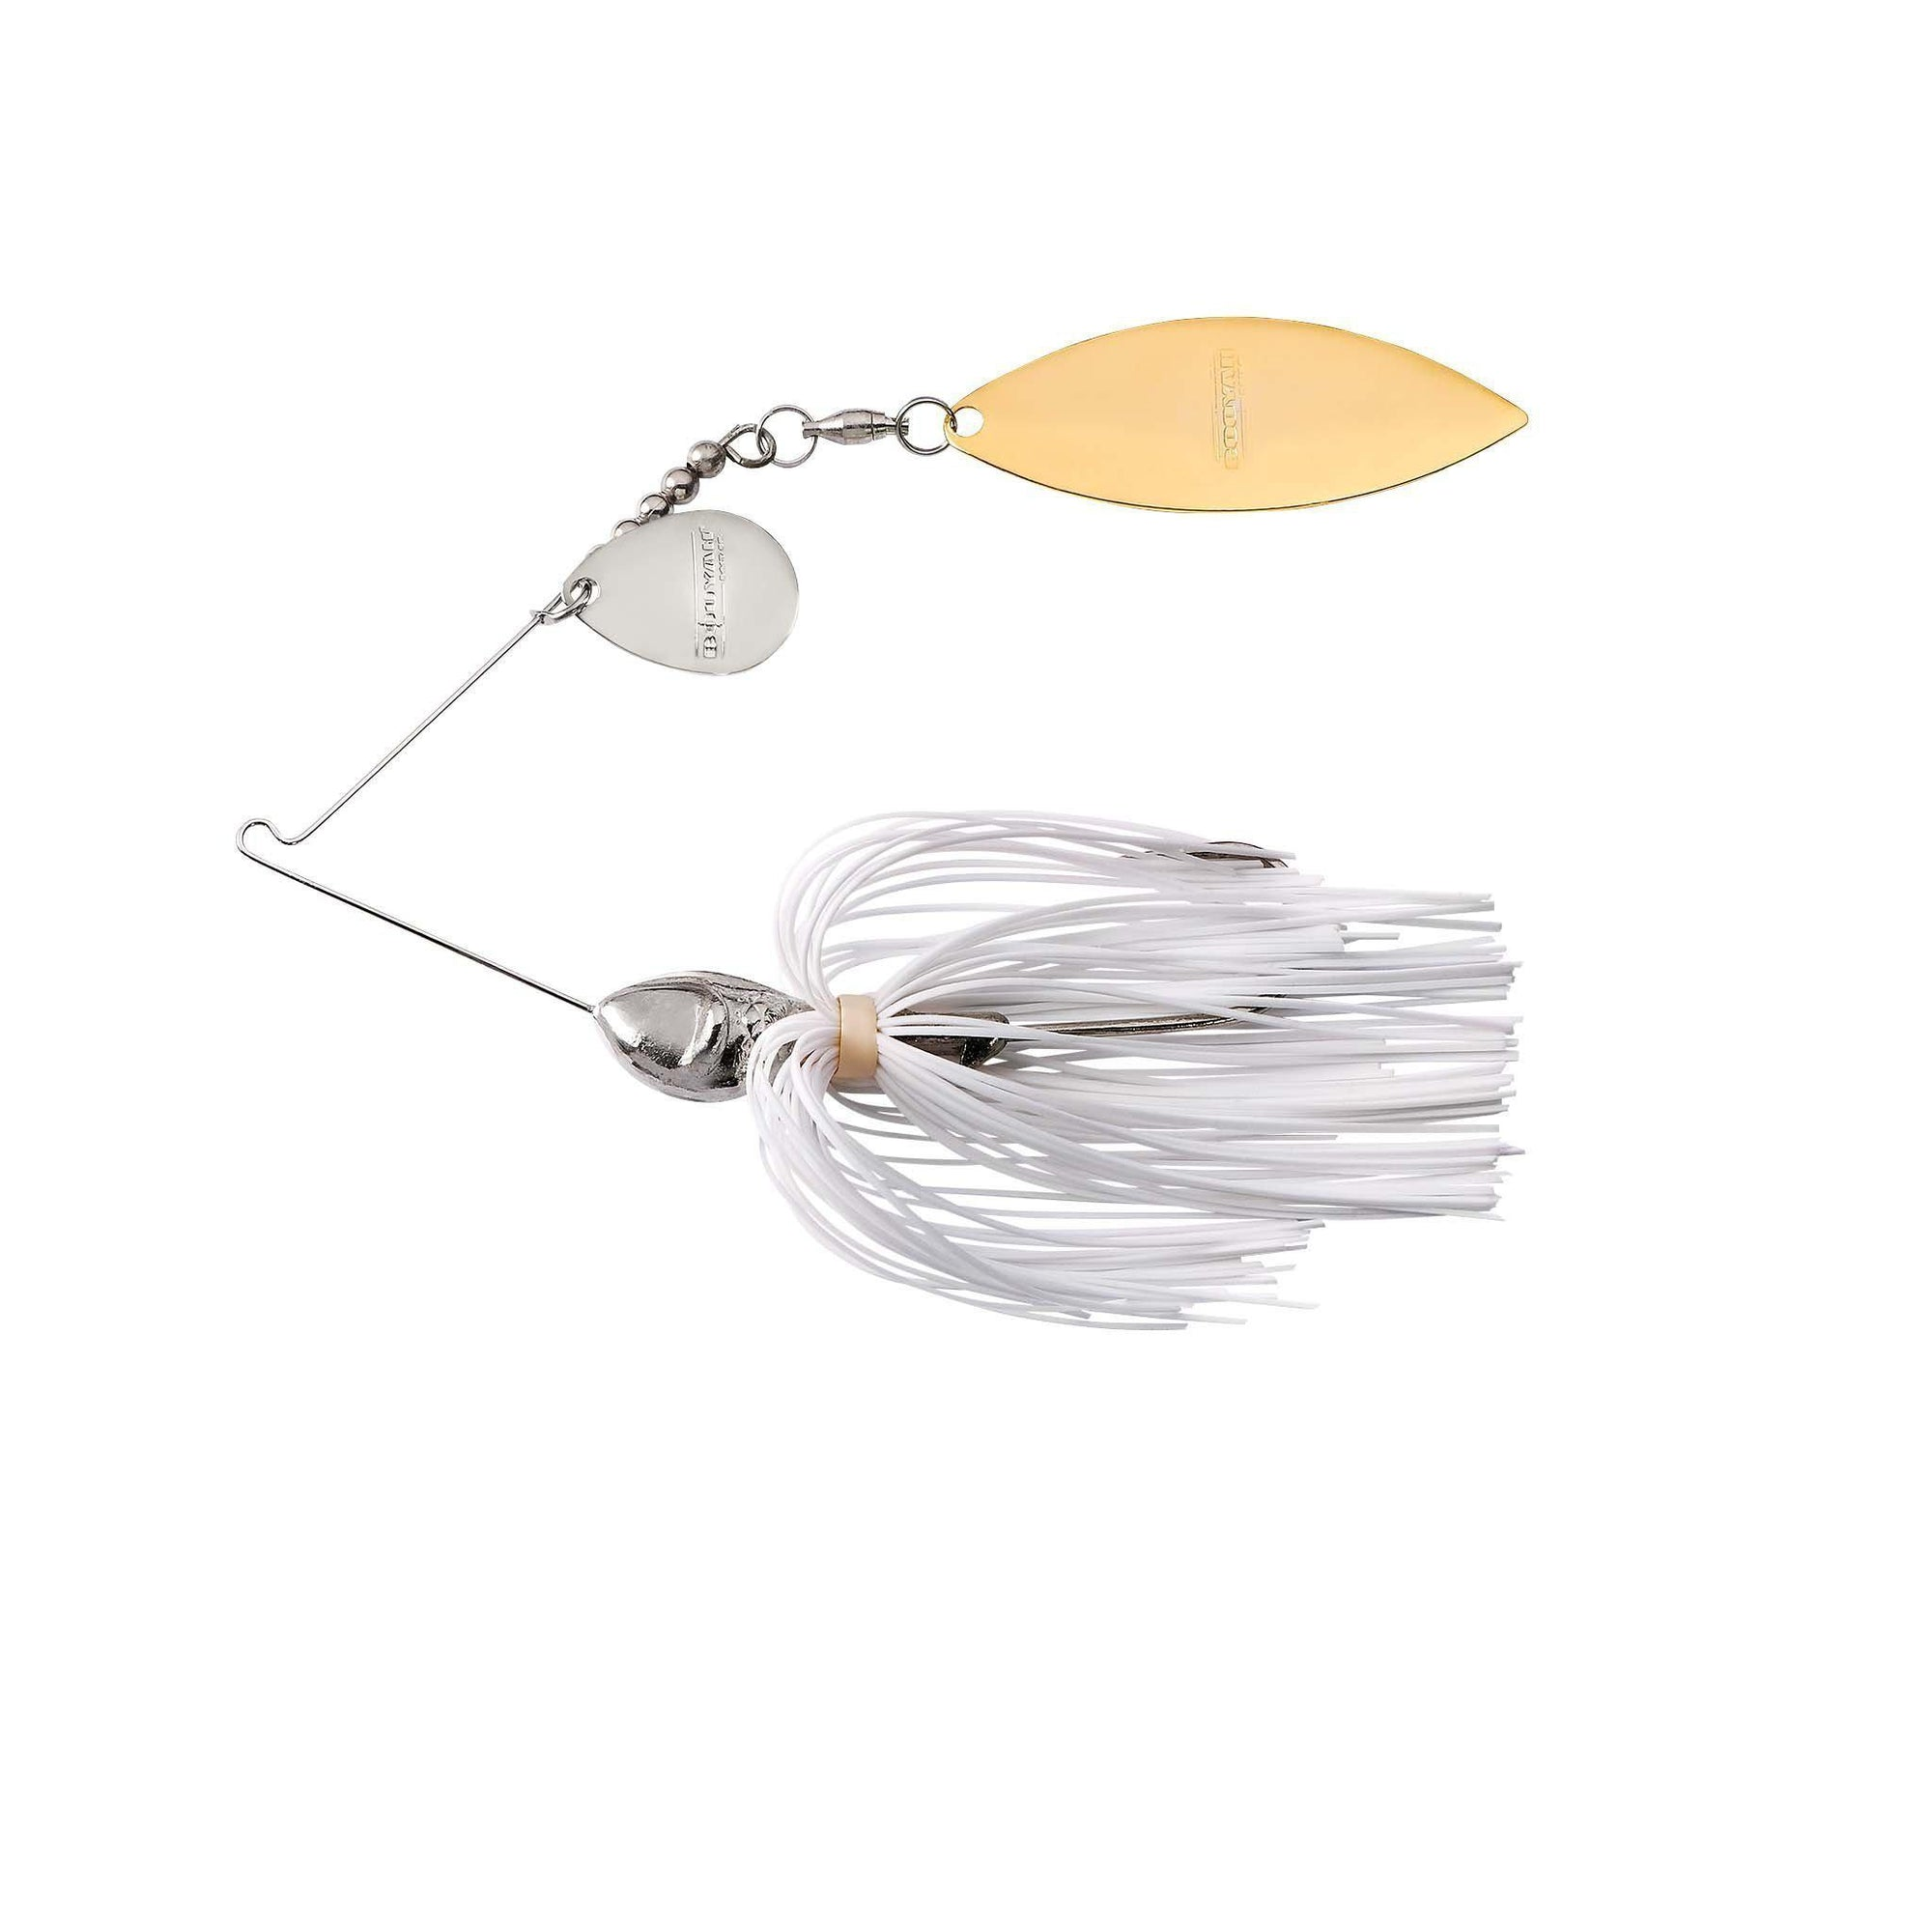 Booyah Vibra Wire Tandem-Spinnerbaits-Booyah Baits-Pearl White-1/2oz-Bass Fishing Hub